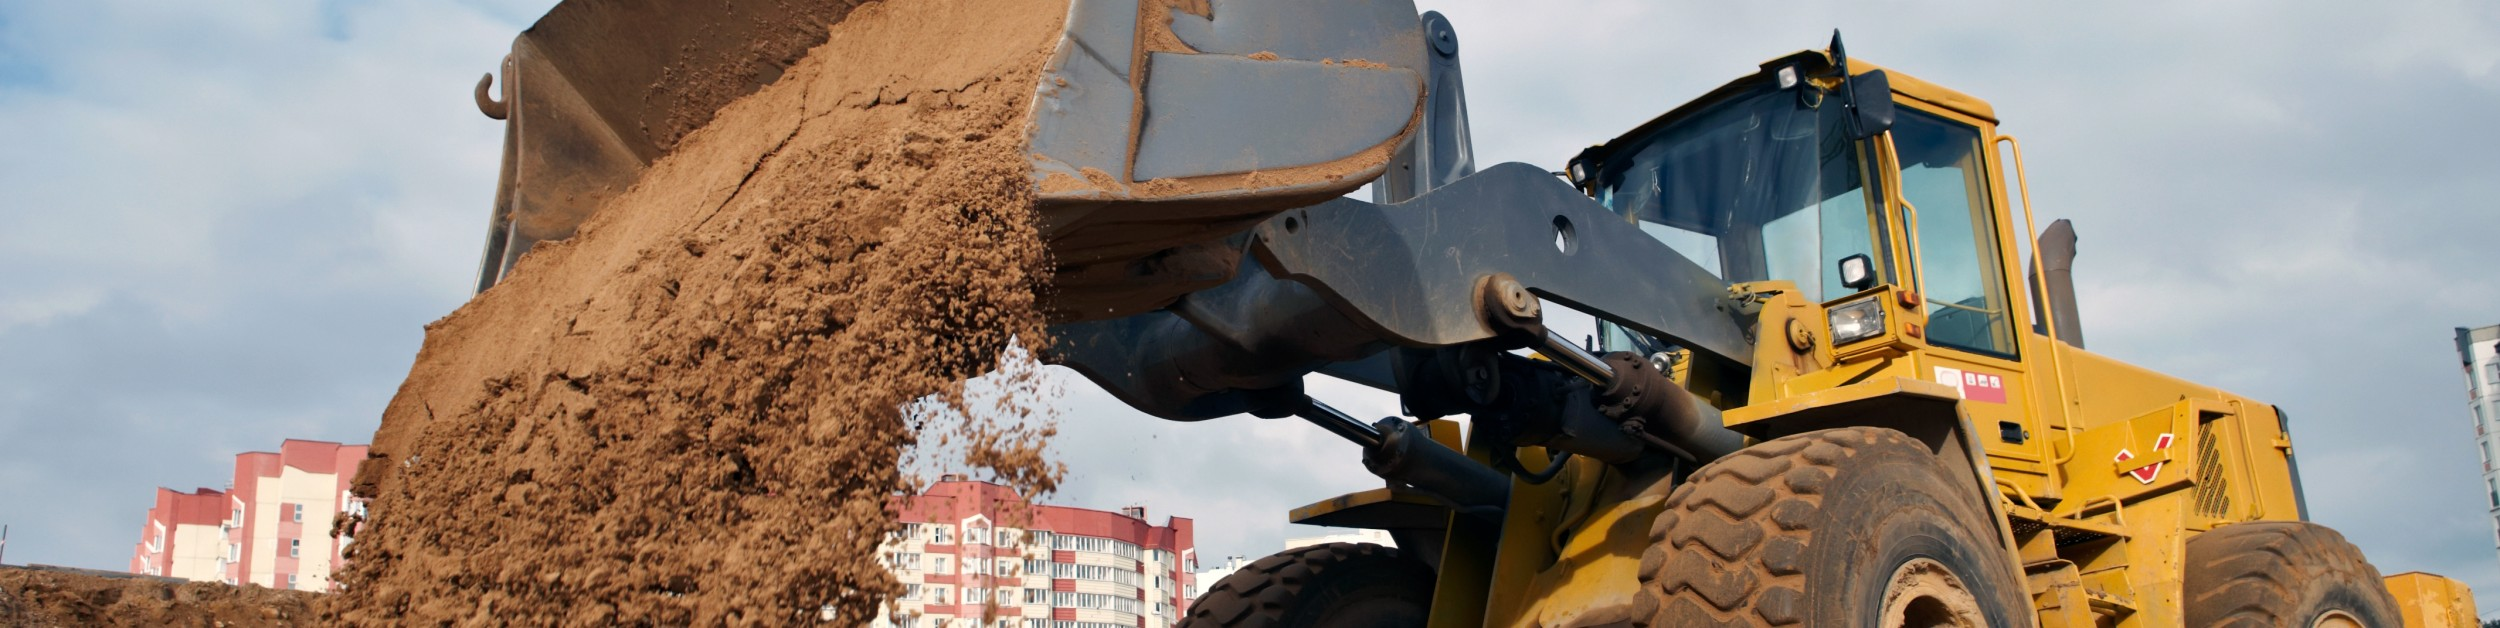 Wheel loader machine unloading sand at eathmoving works in construction site. Stock photoFile #: 13818199